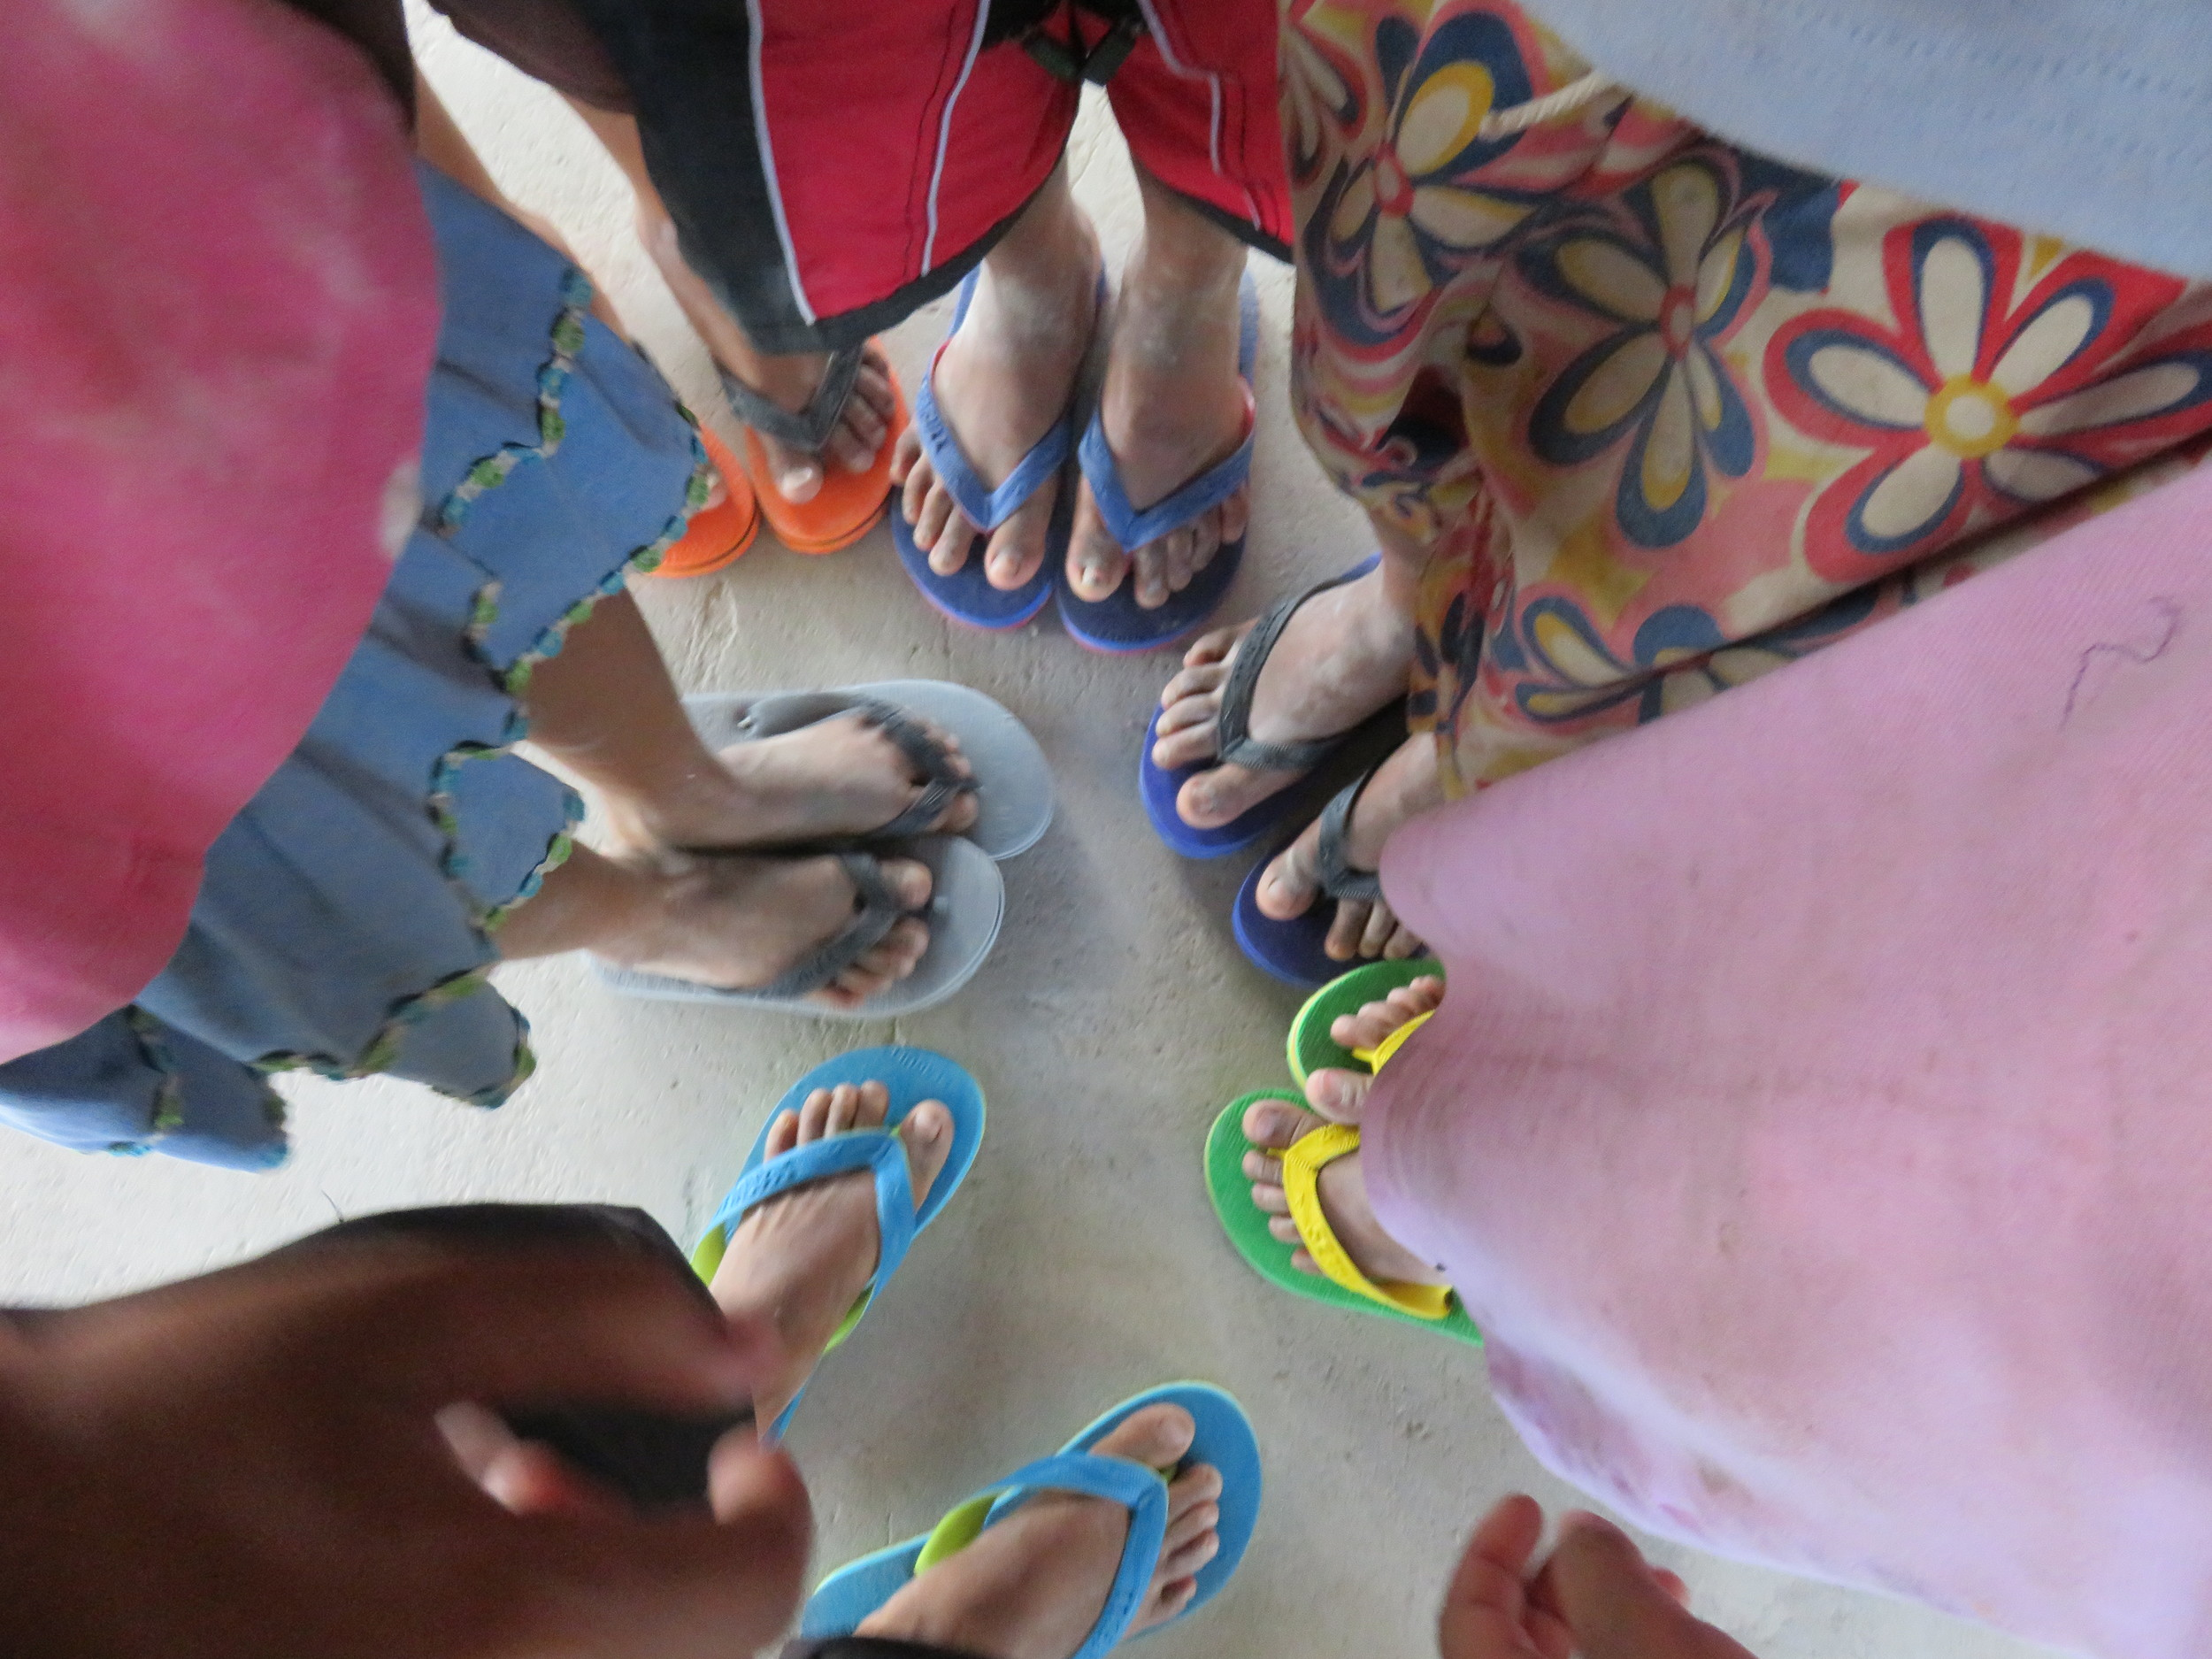 New sandals for Side 4 bakwit children